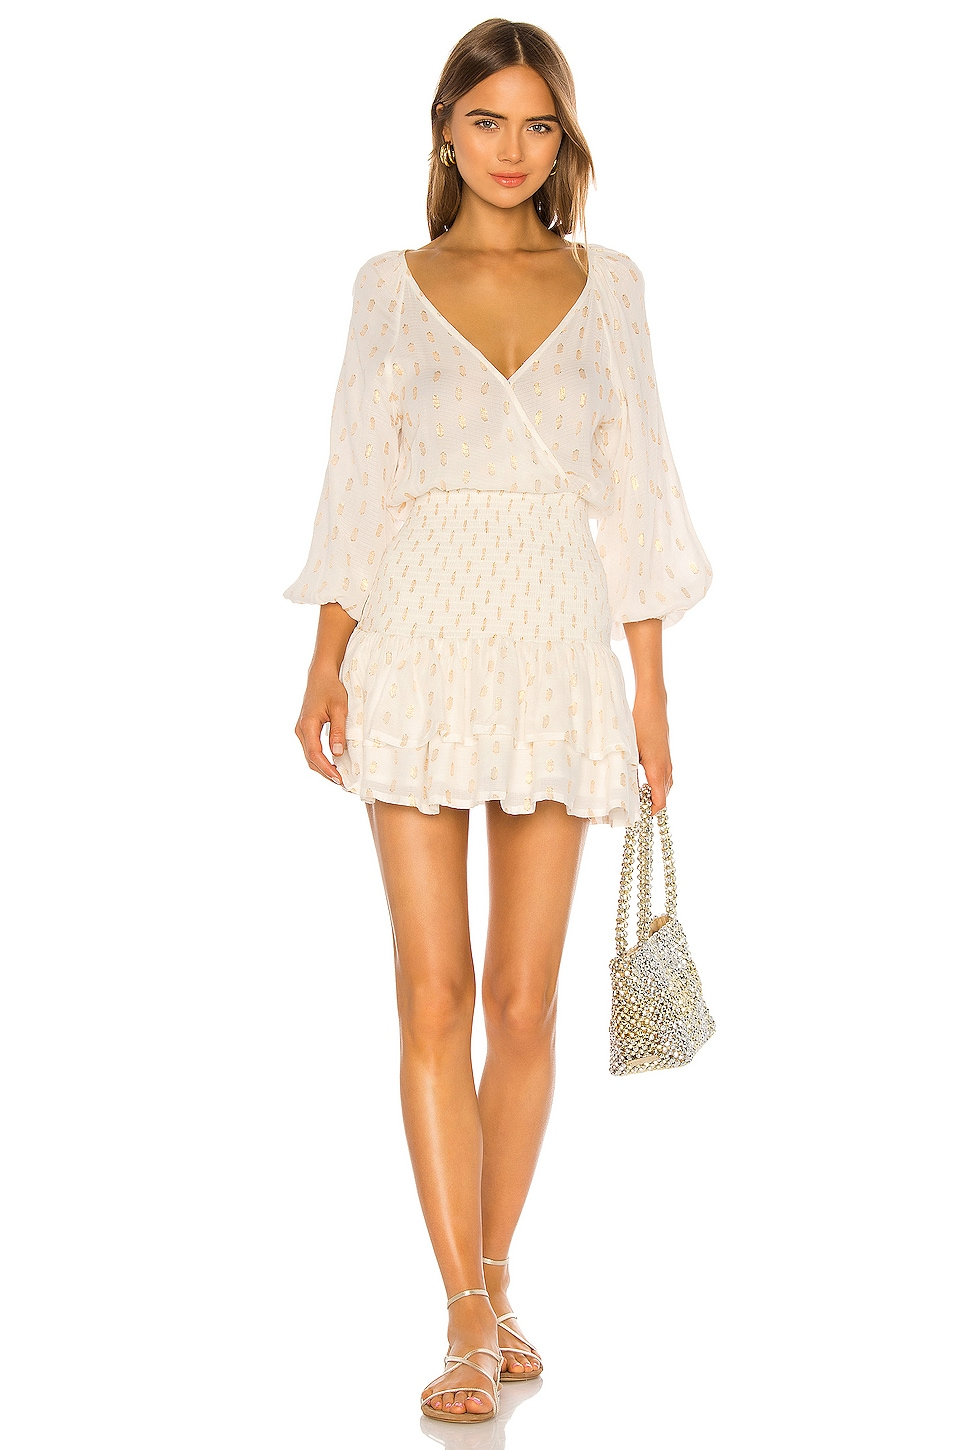 Suboo Mae Shirred Mini Dress in Ivory & Gold